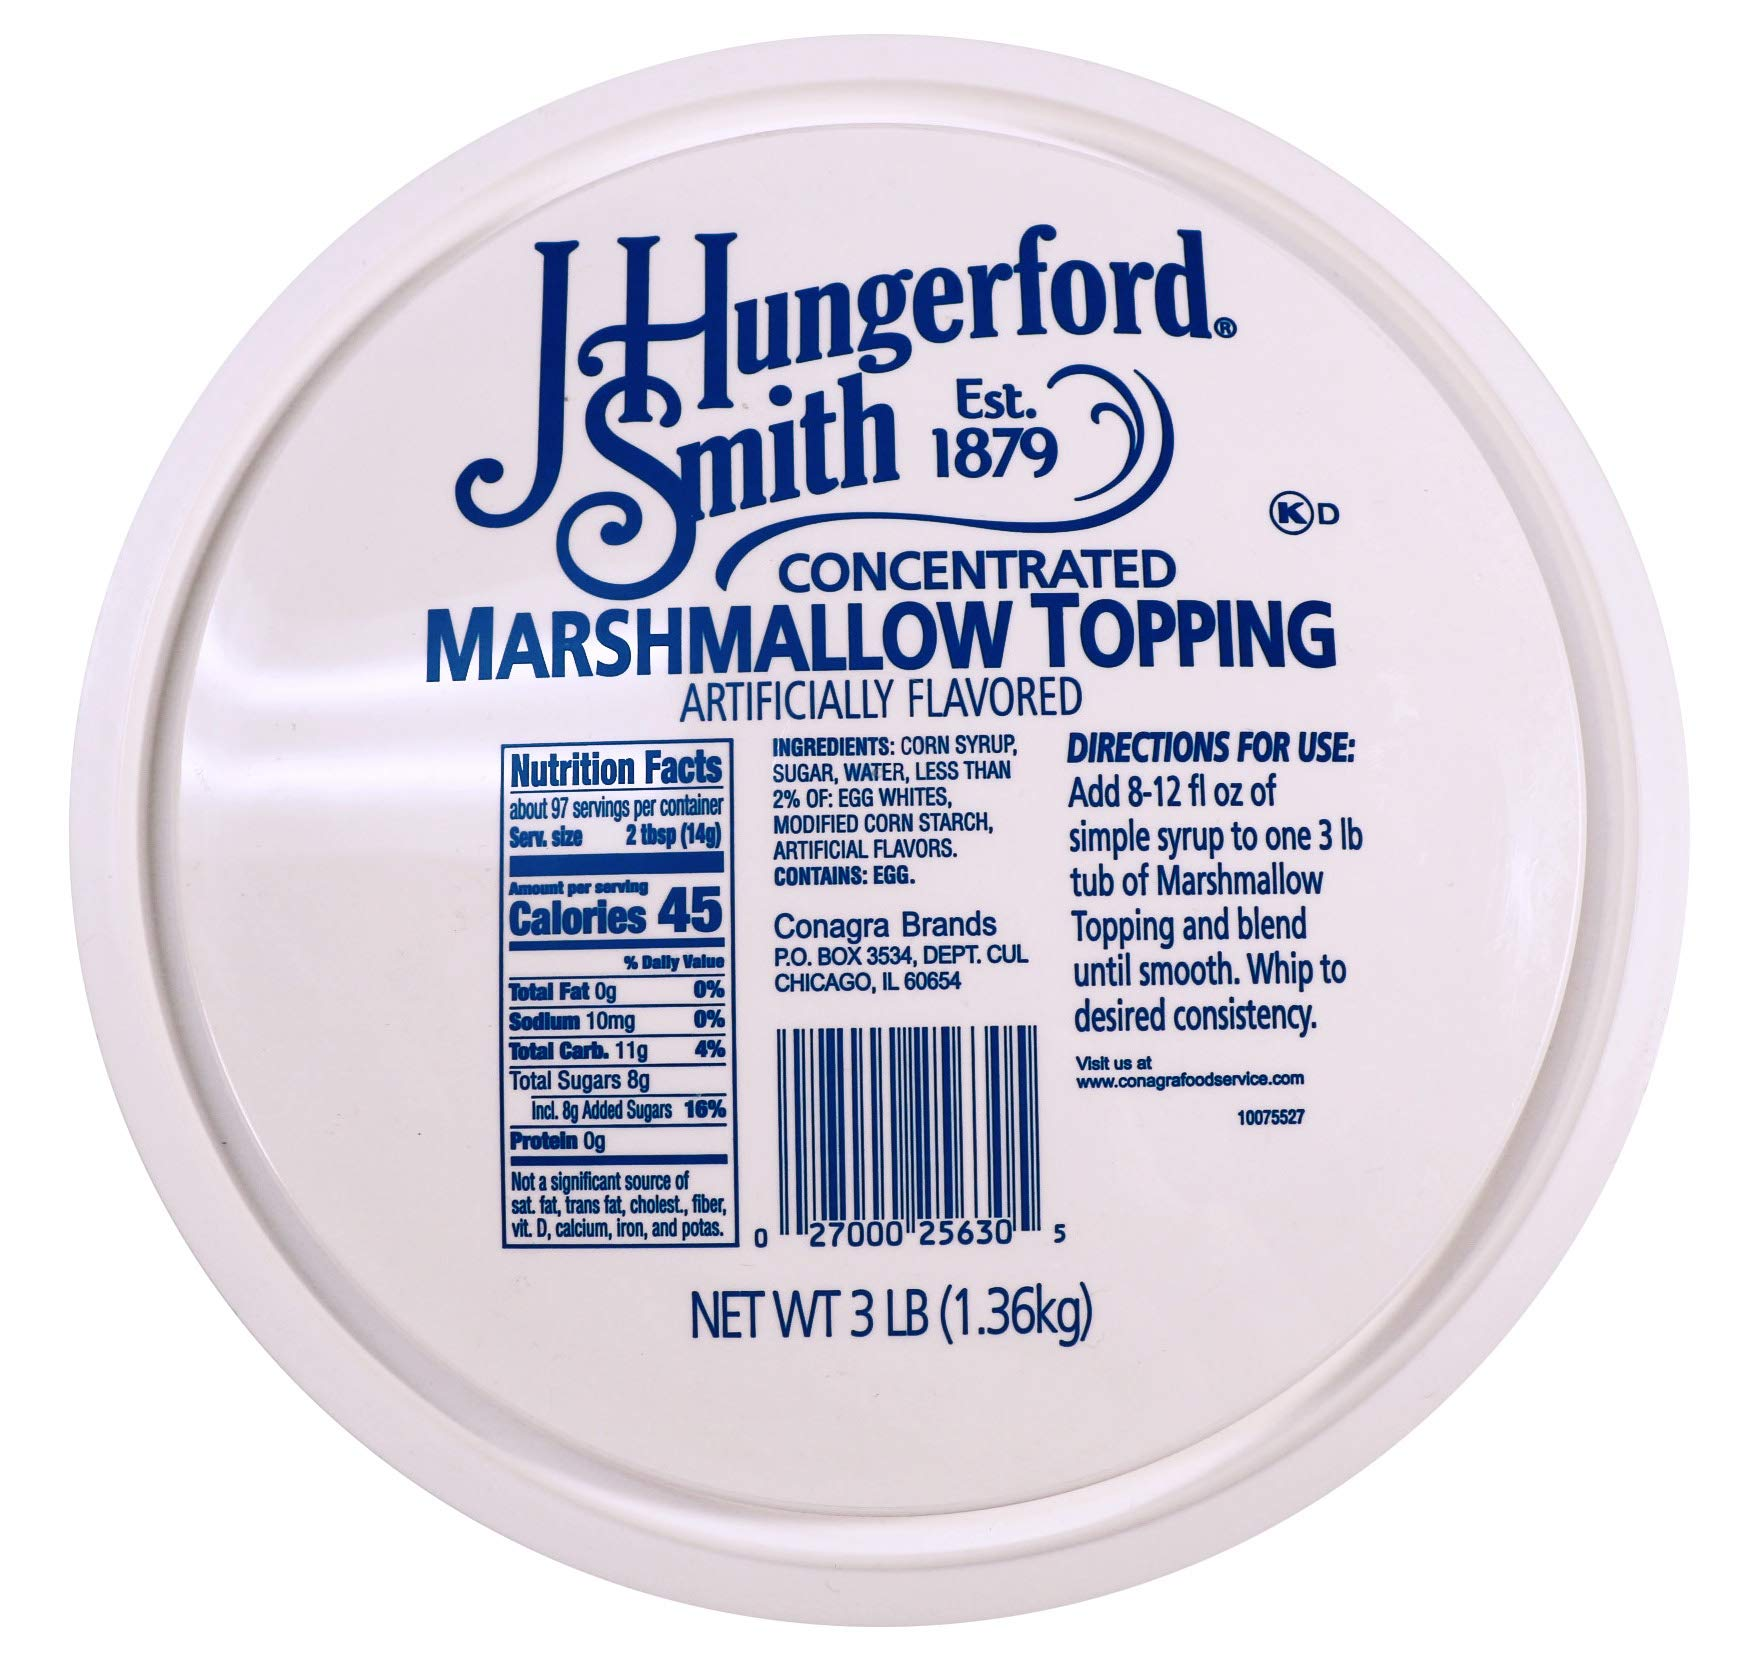 J Hungerford Smith Concentrated Marshmallow Topping, 48 Oz Tub, 4 Pack by J. Hungerford Smith